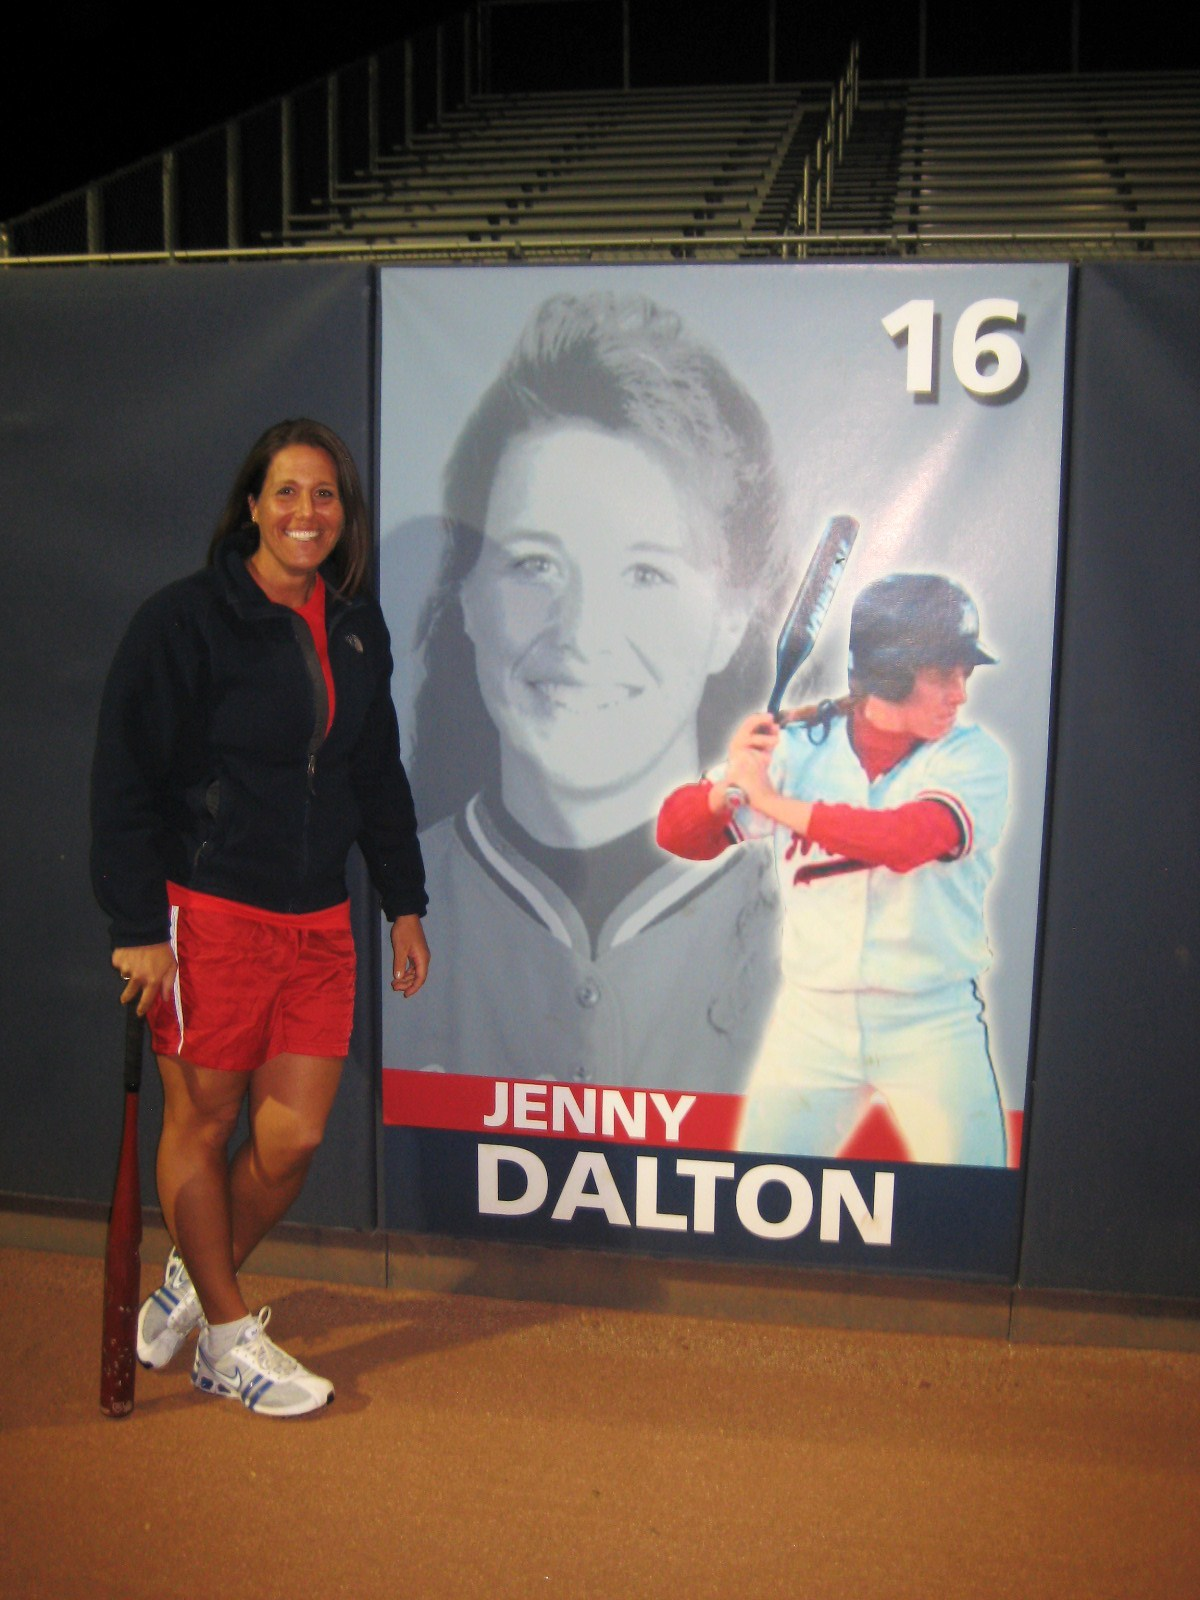 Jenny Dalton-Hill helped lead Arizona to four National Championships as a player and coach.